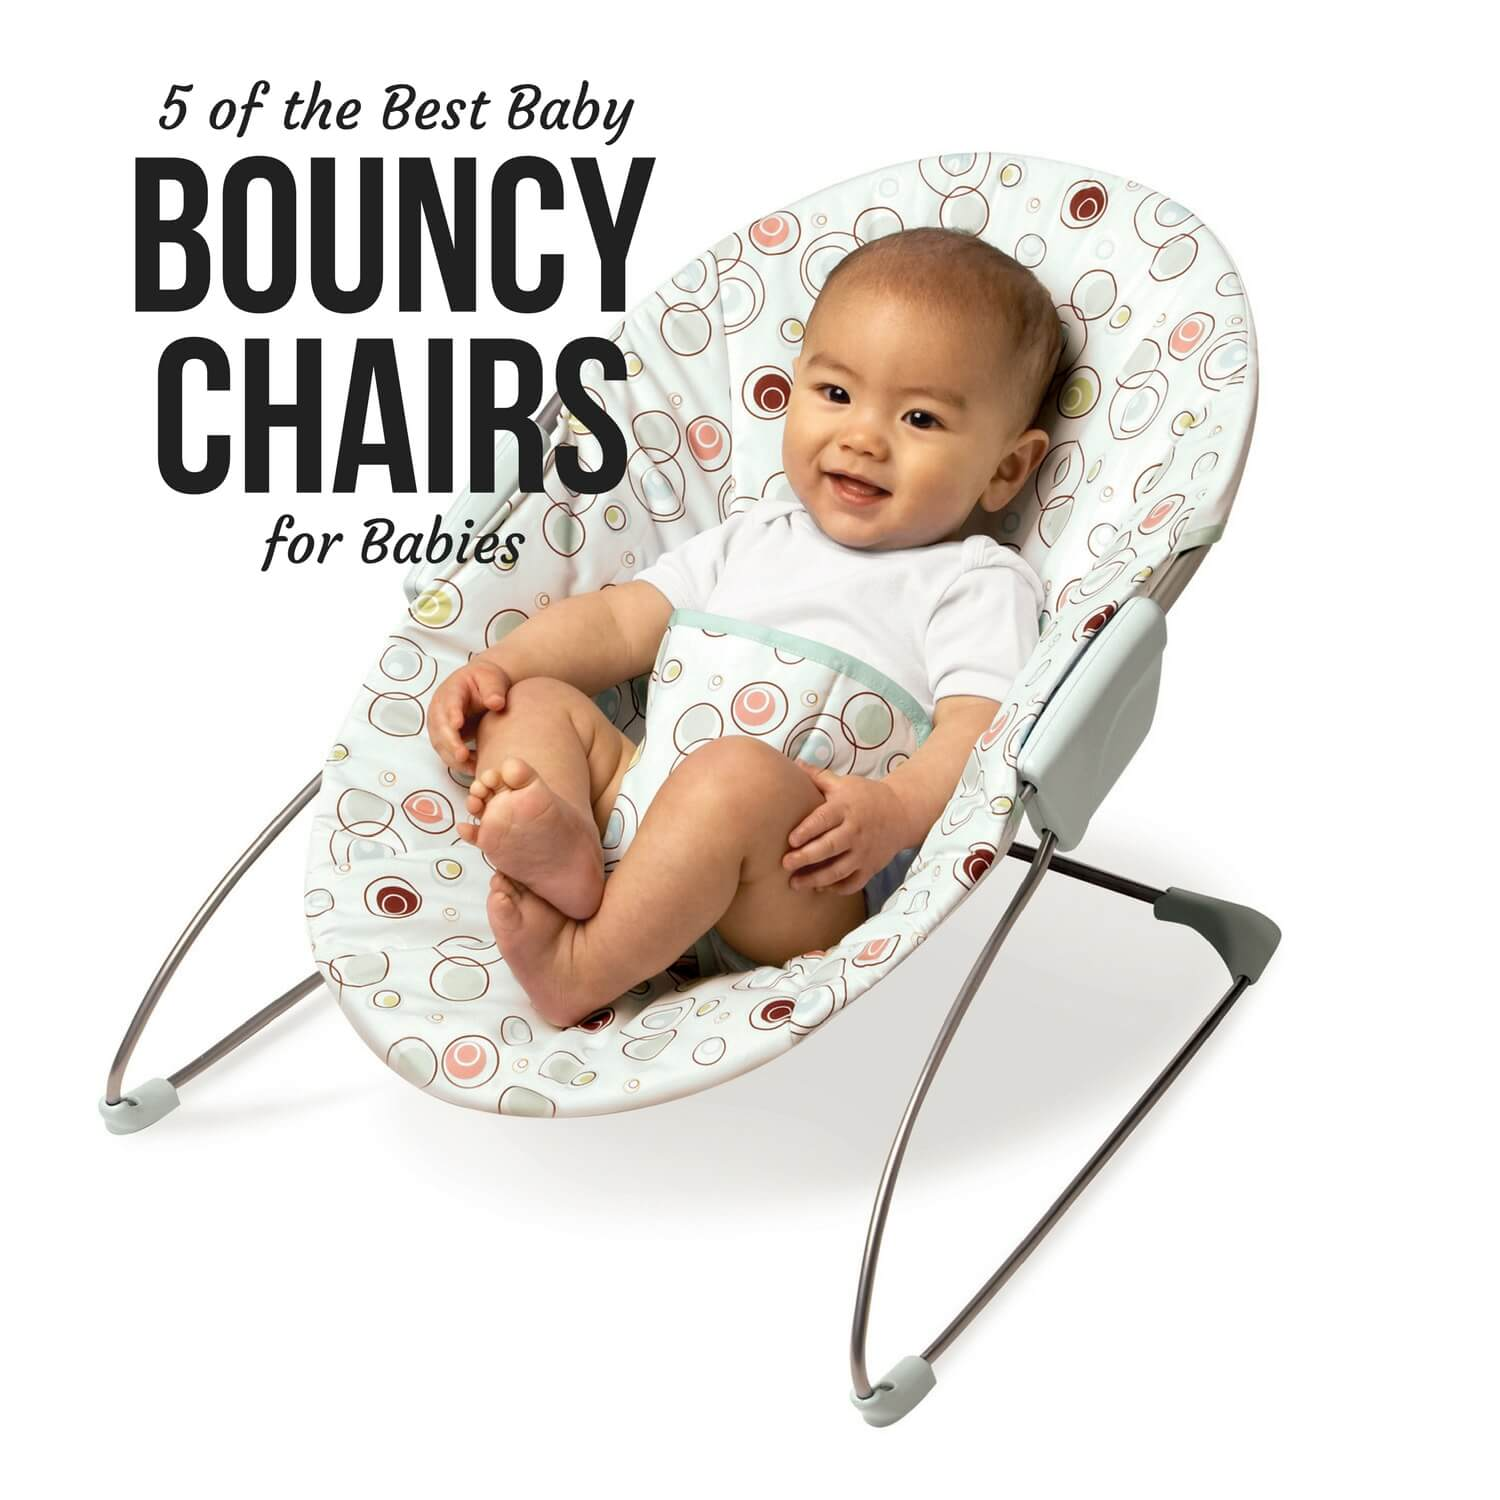 infant bouncy chair outdoor hanging best chairs for babies babycare mag 5 of the